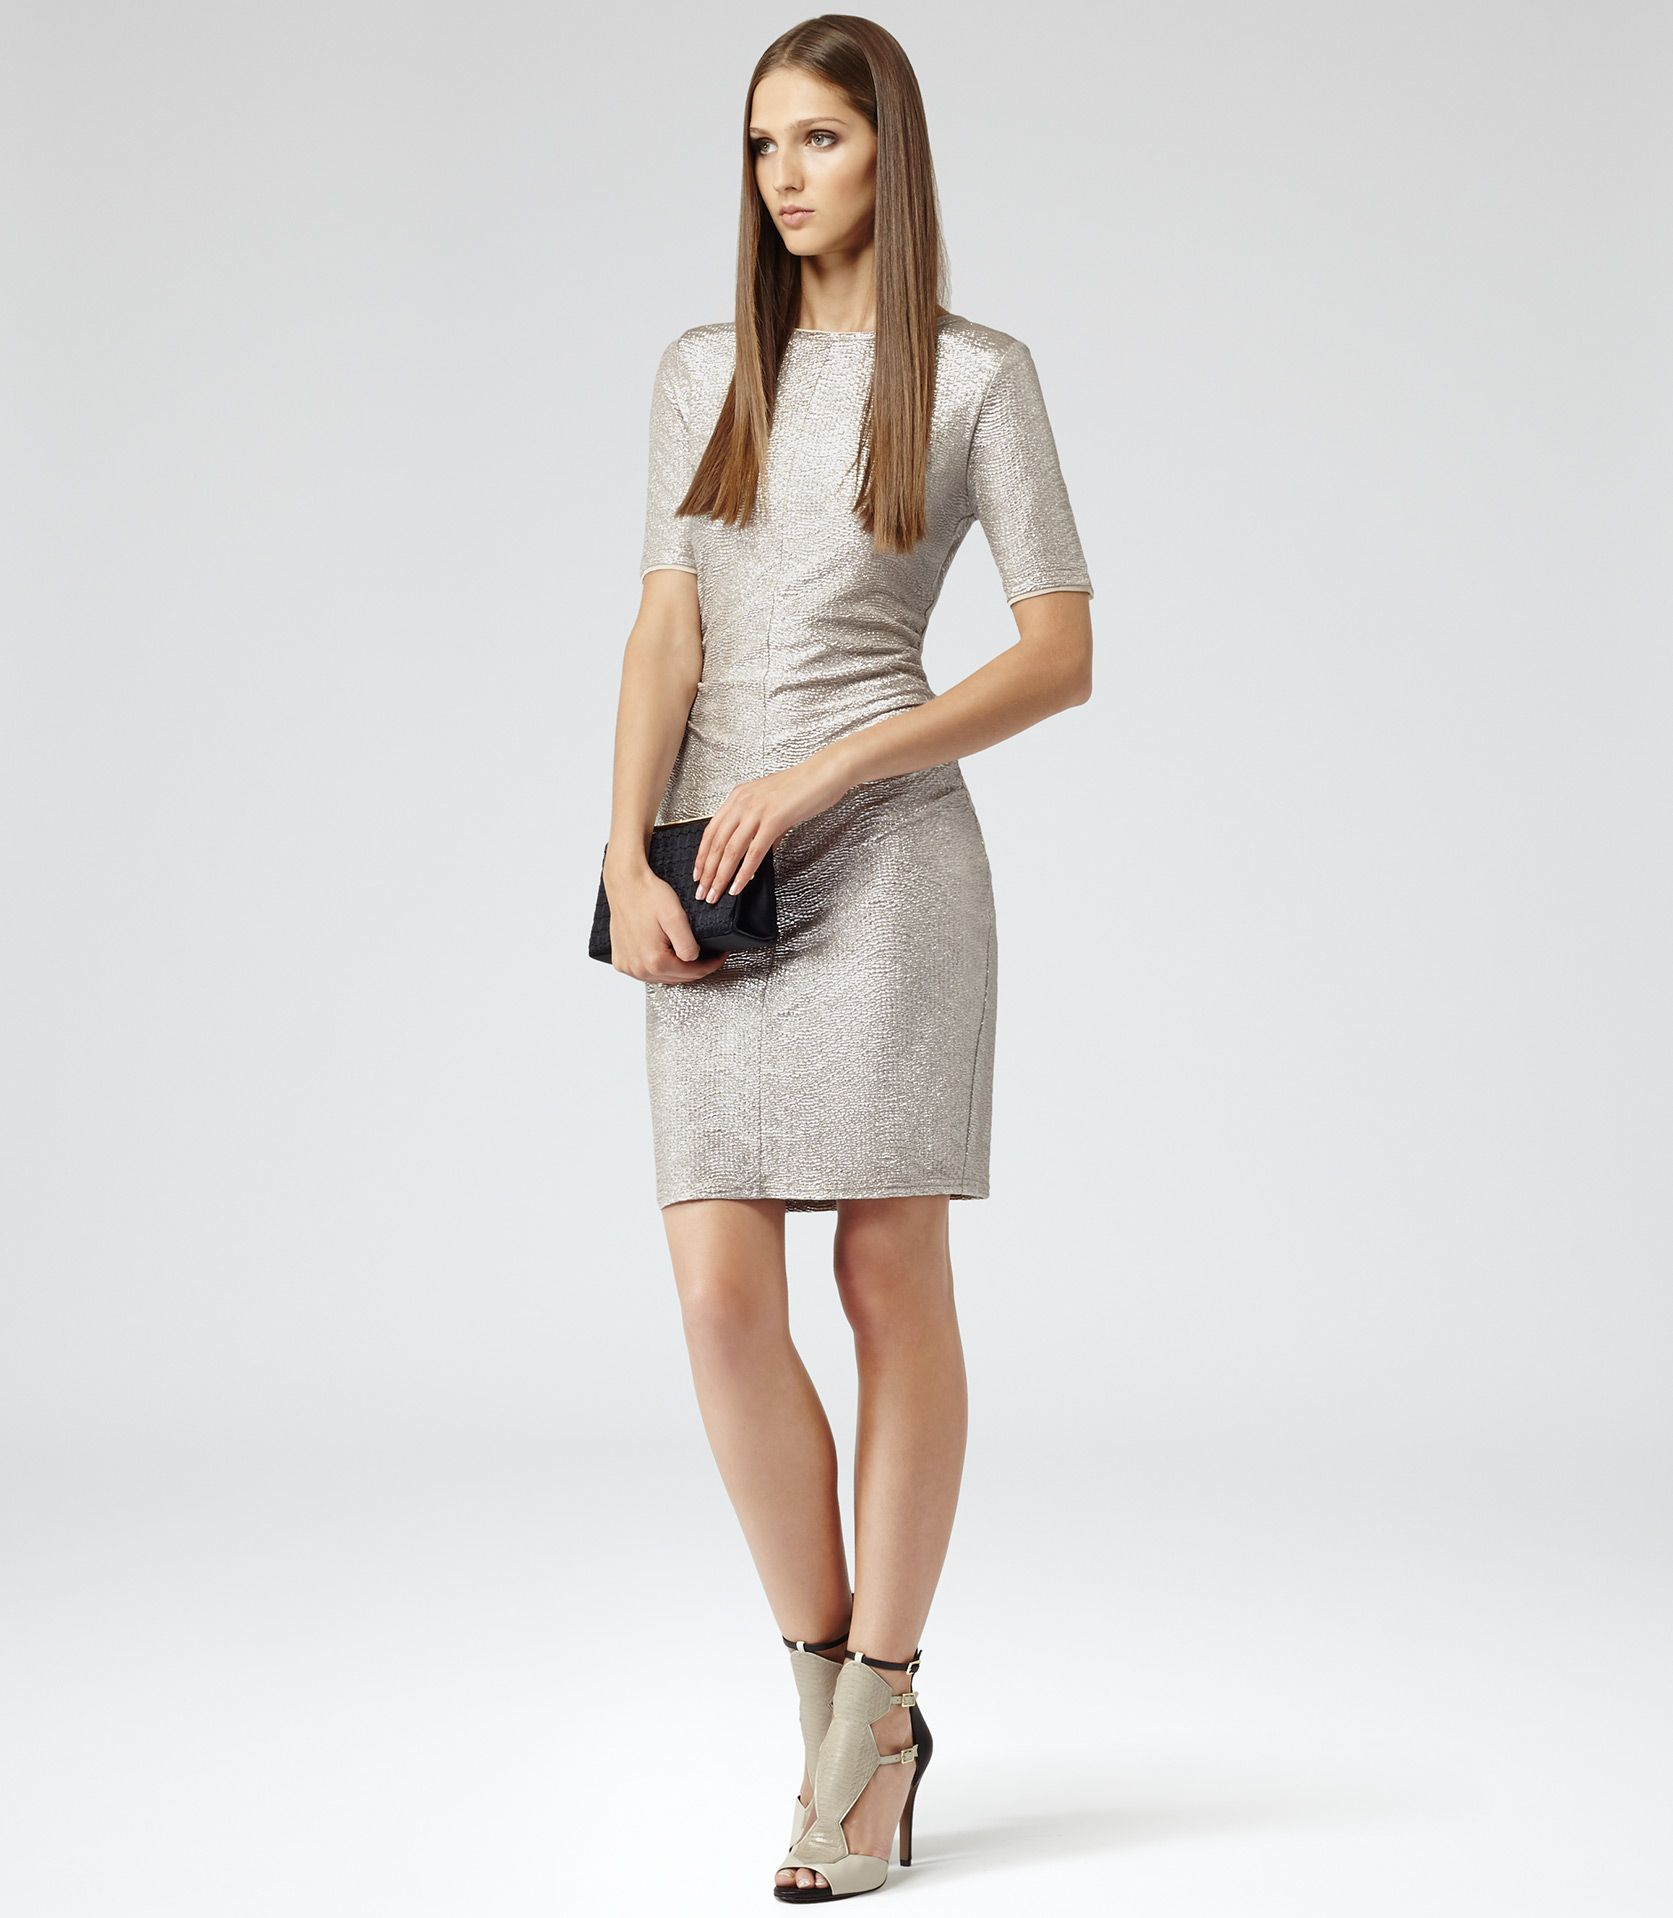 Abellia Metallic Short Sleeve Ruched Shift Dress - REISS